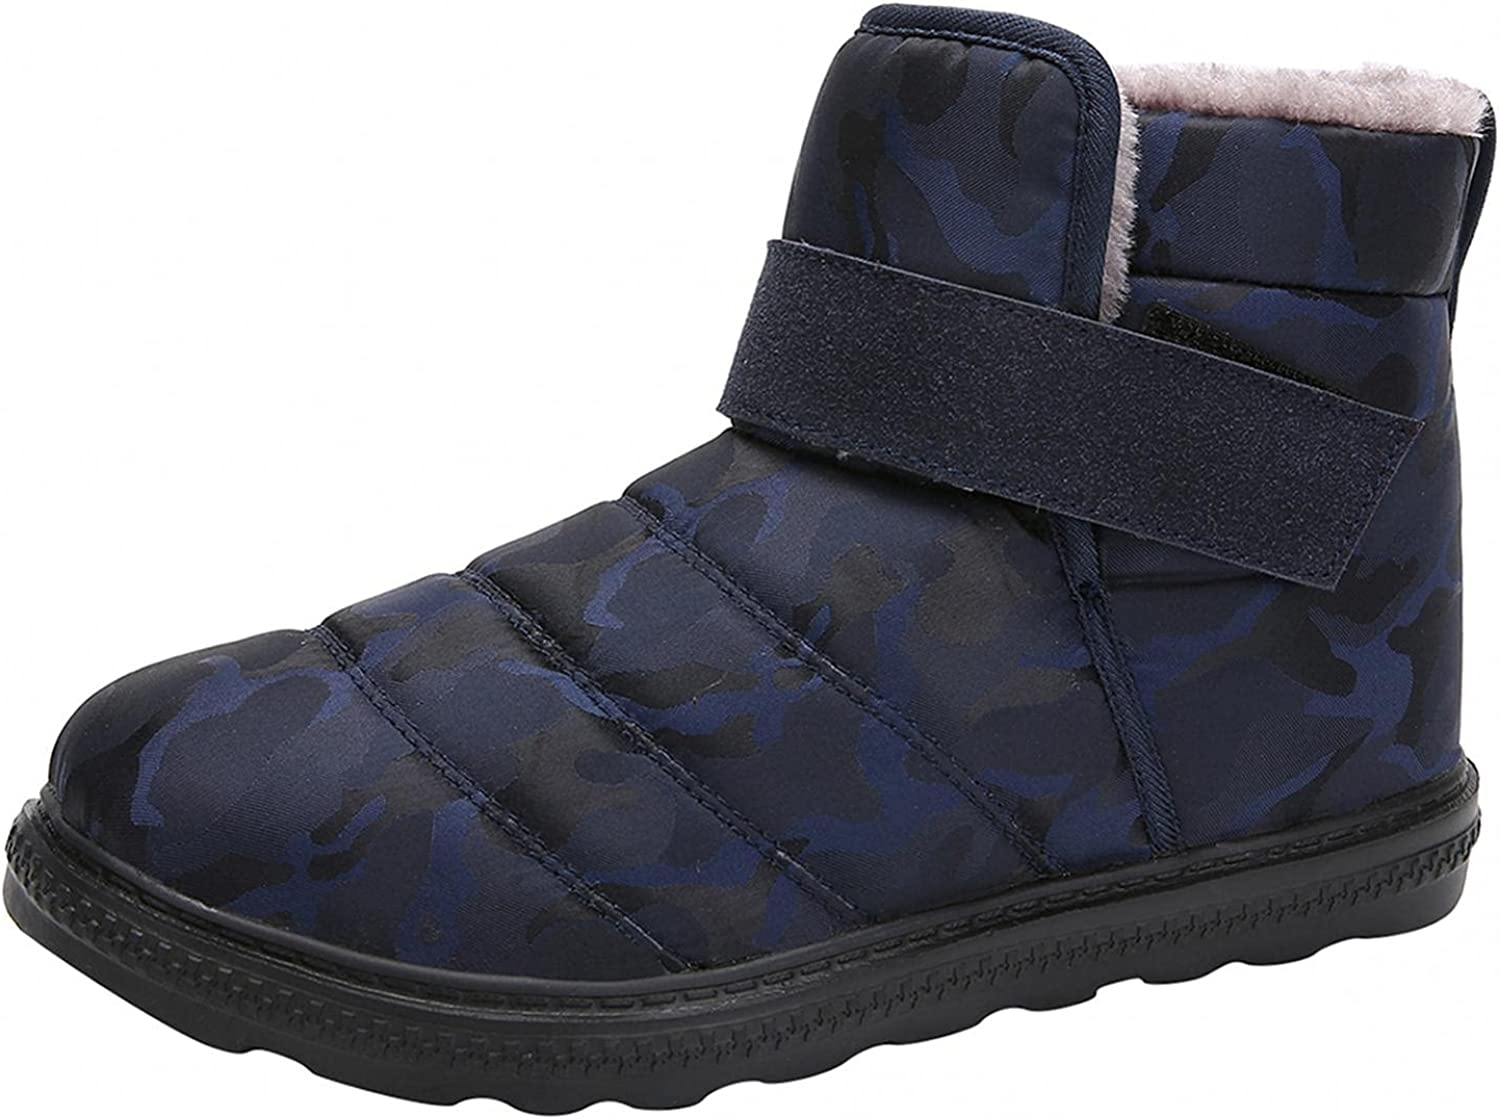 Snow Boots for Women, Kcocoo Warm Ankle Booties Waterproof Comfo